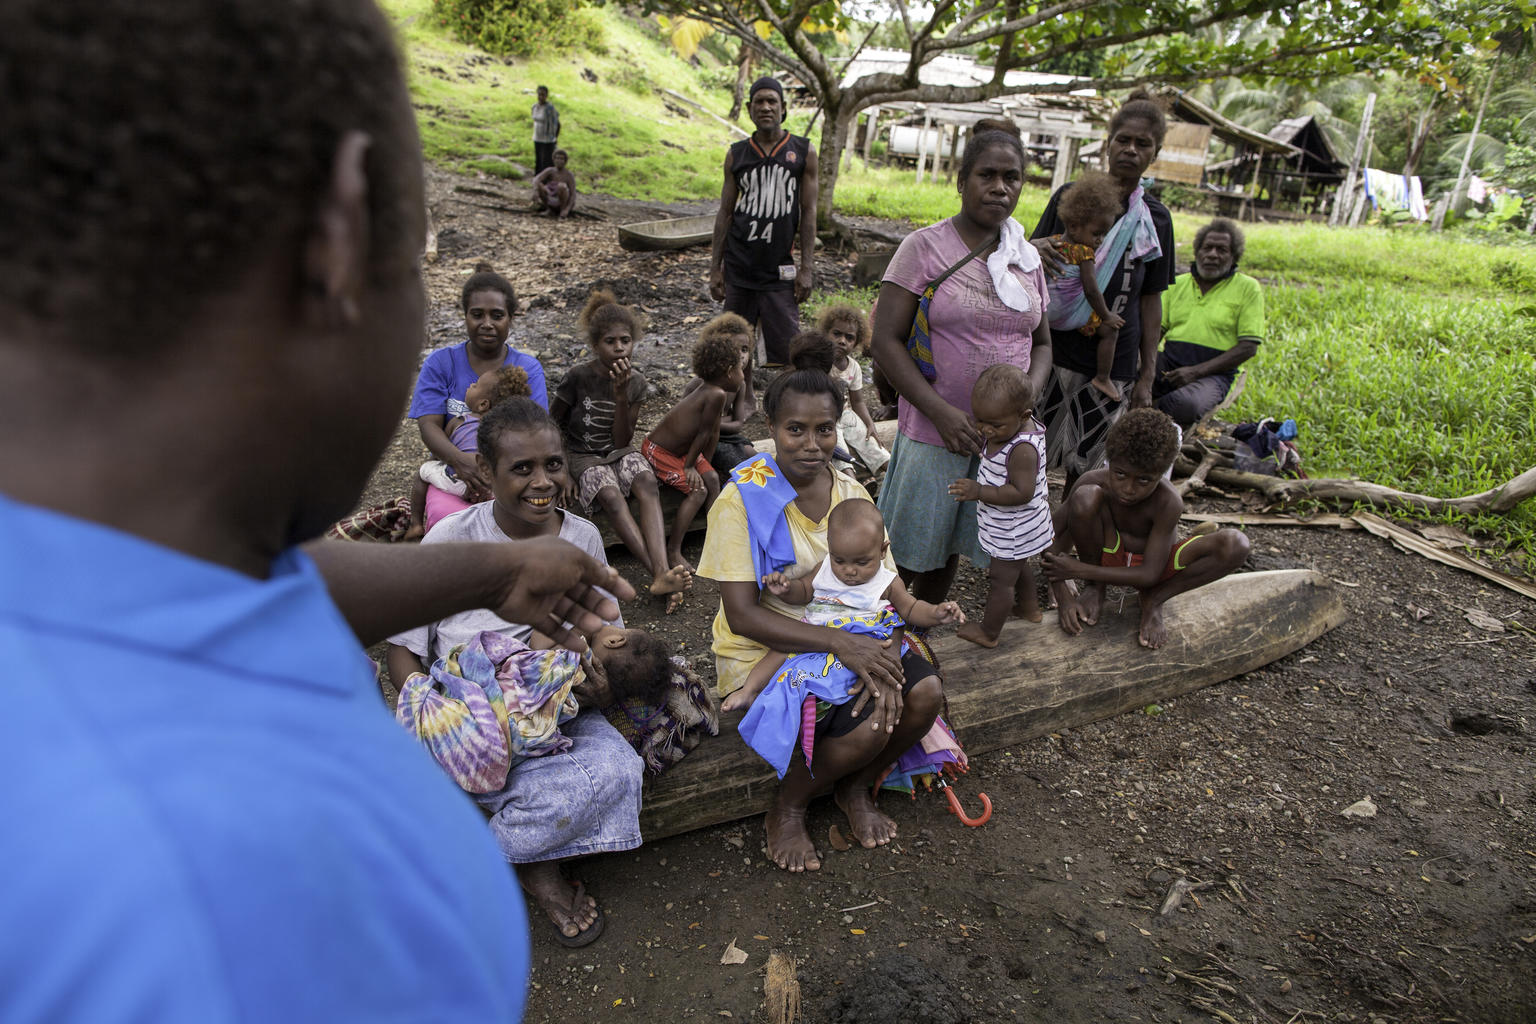 UNICEF Health Worker Paul Maesiala gives nutrition advice to a community in the Solomon Islands